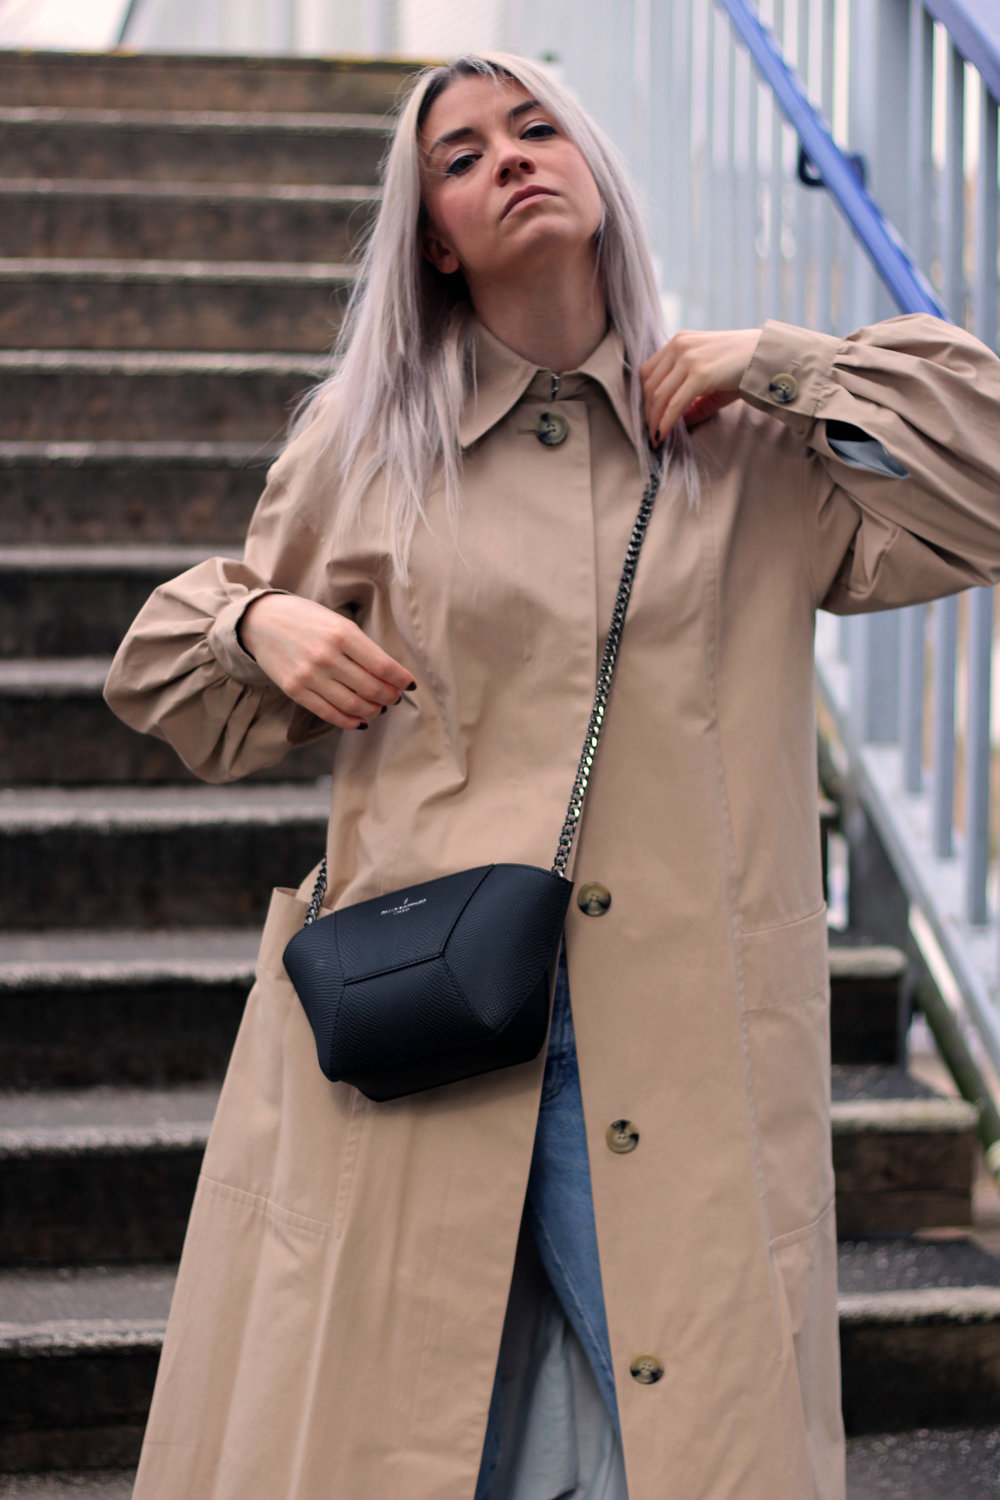 TRENCH COAT, PAULS BOUTIQUE BAG, GIVEAWAY, TOPSHOP JEANS 5